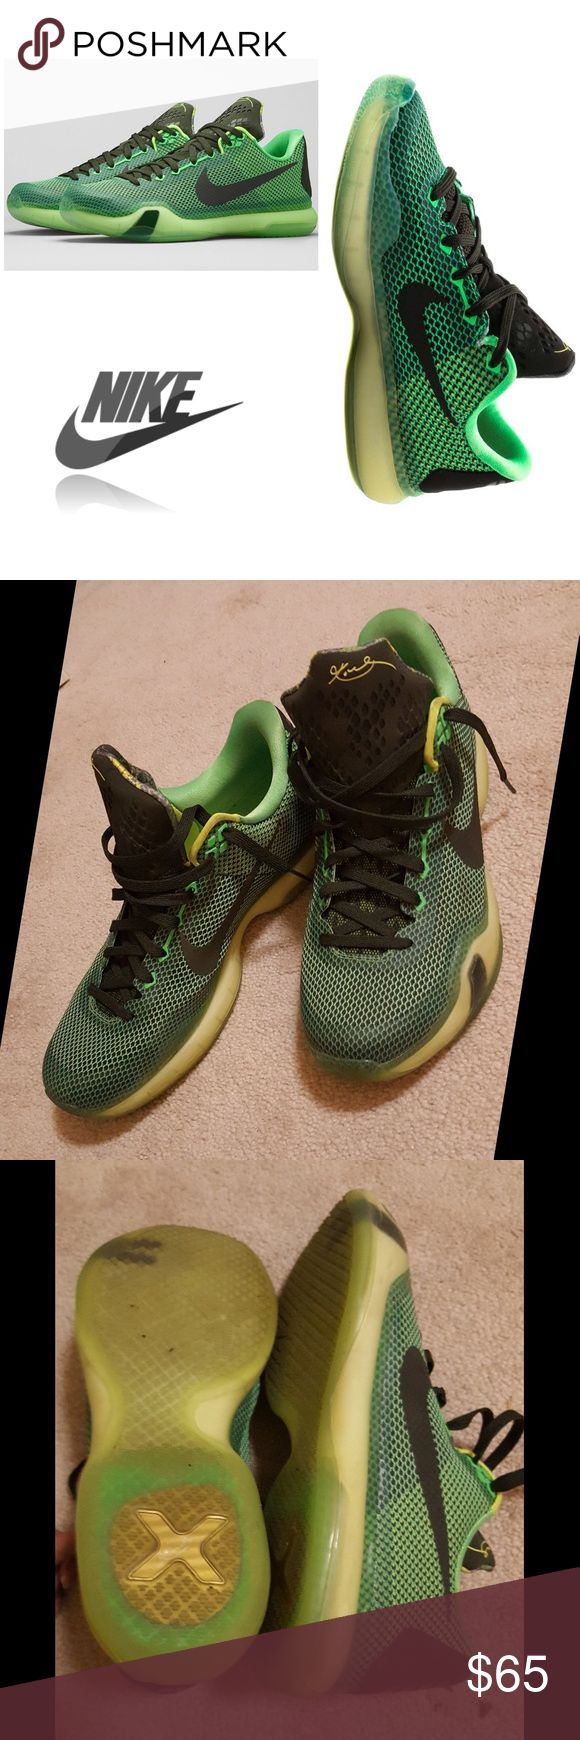 NIKE Kobe 10 shoe  - green volt Basketball Nike shoes in good condition. Only worn indoors and plenty of life left.  Color: green volt Size: 11.5 men's Nike Shoes Athletic Shoes